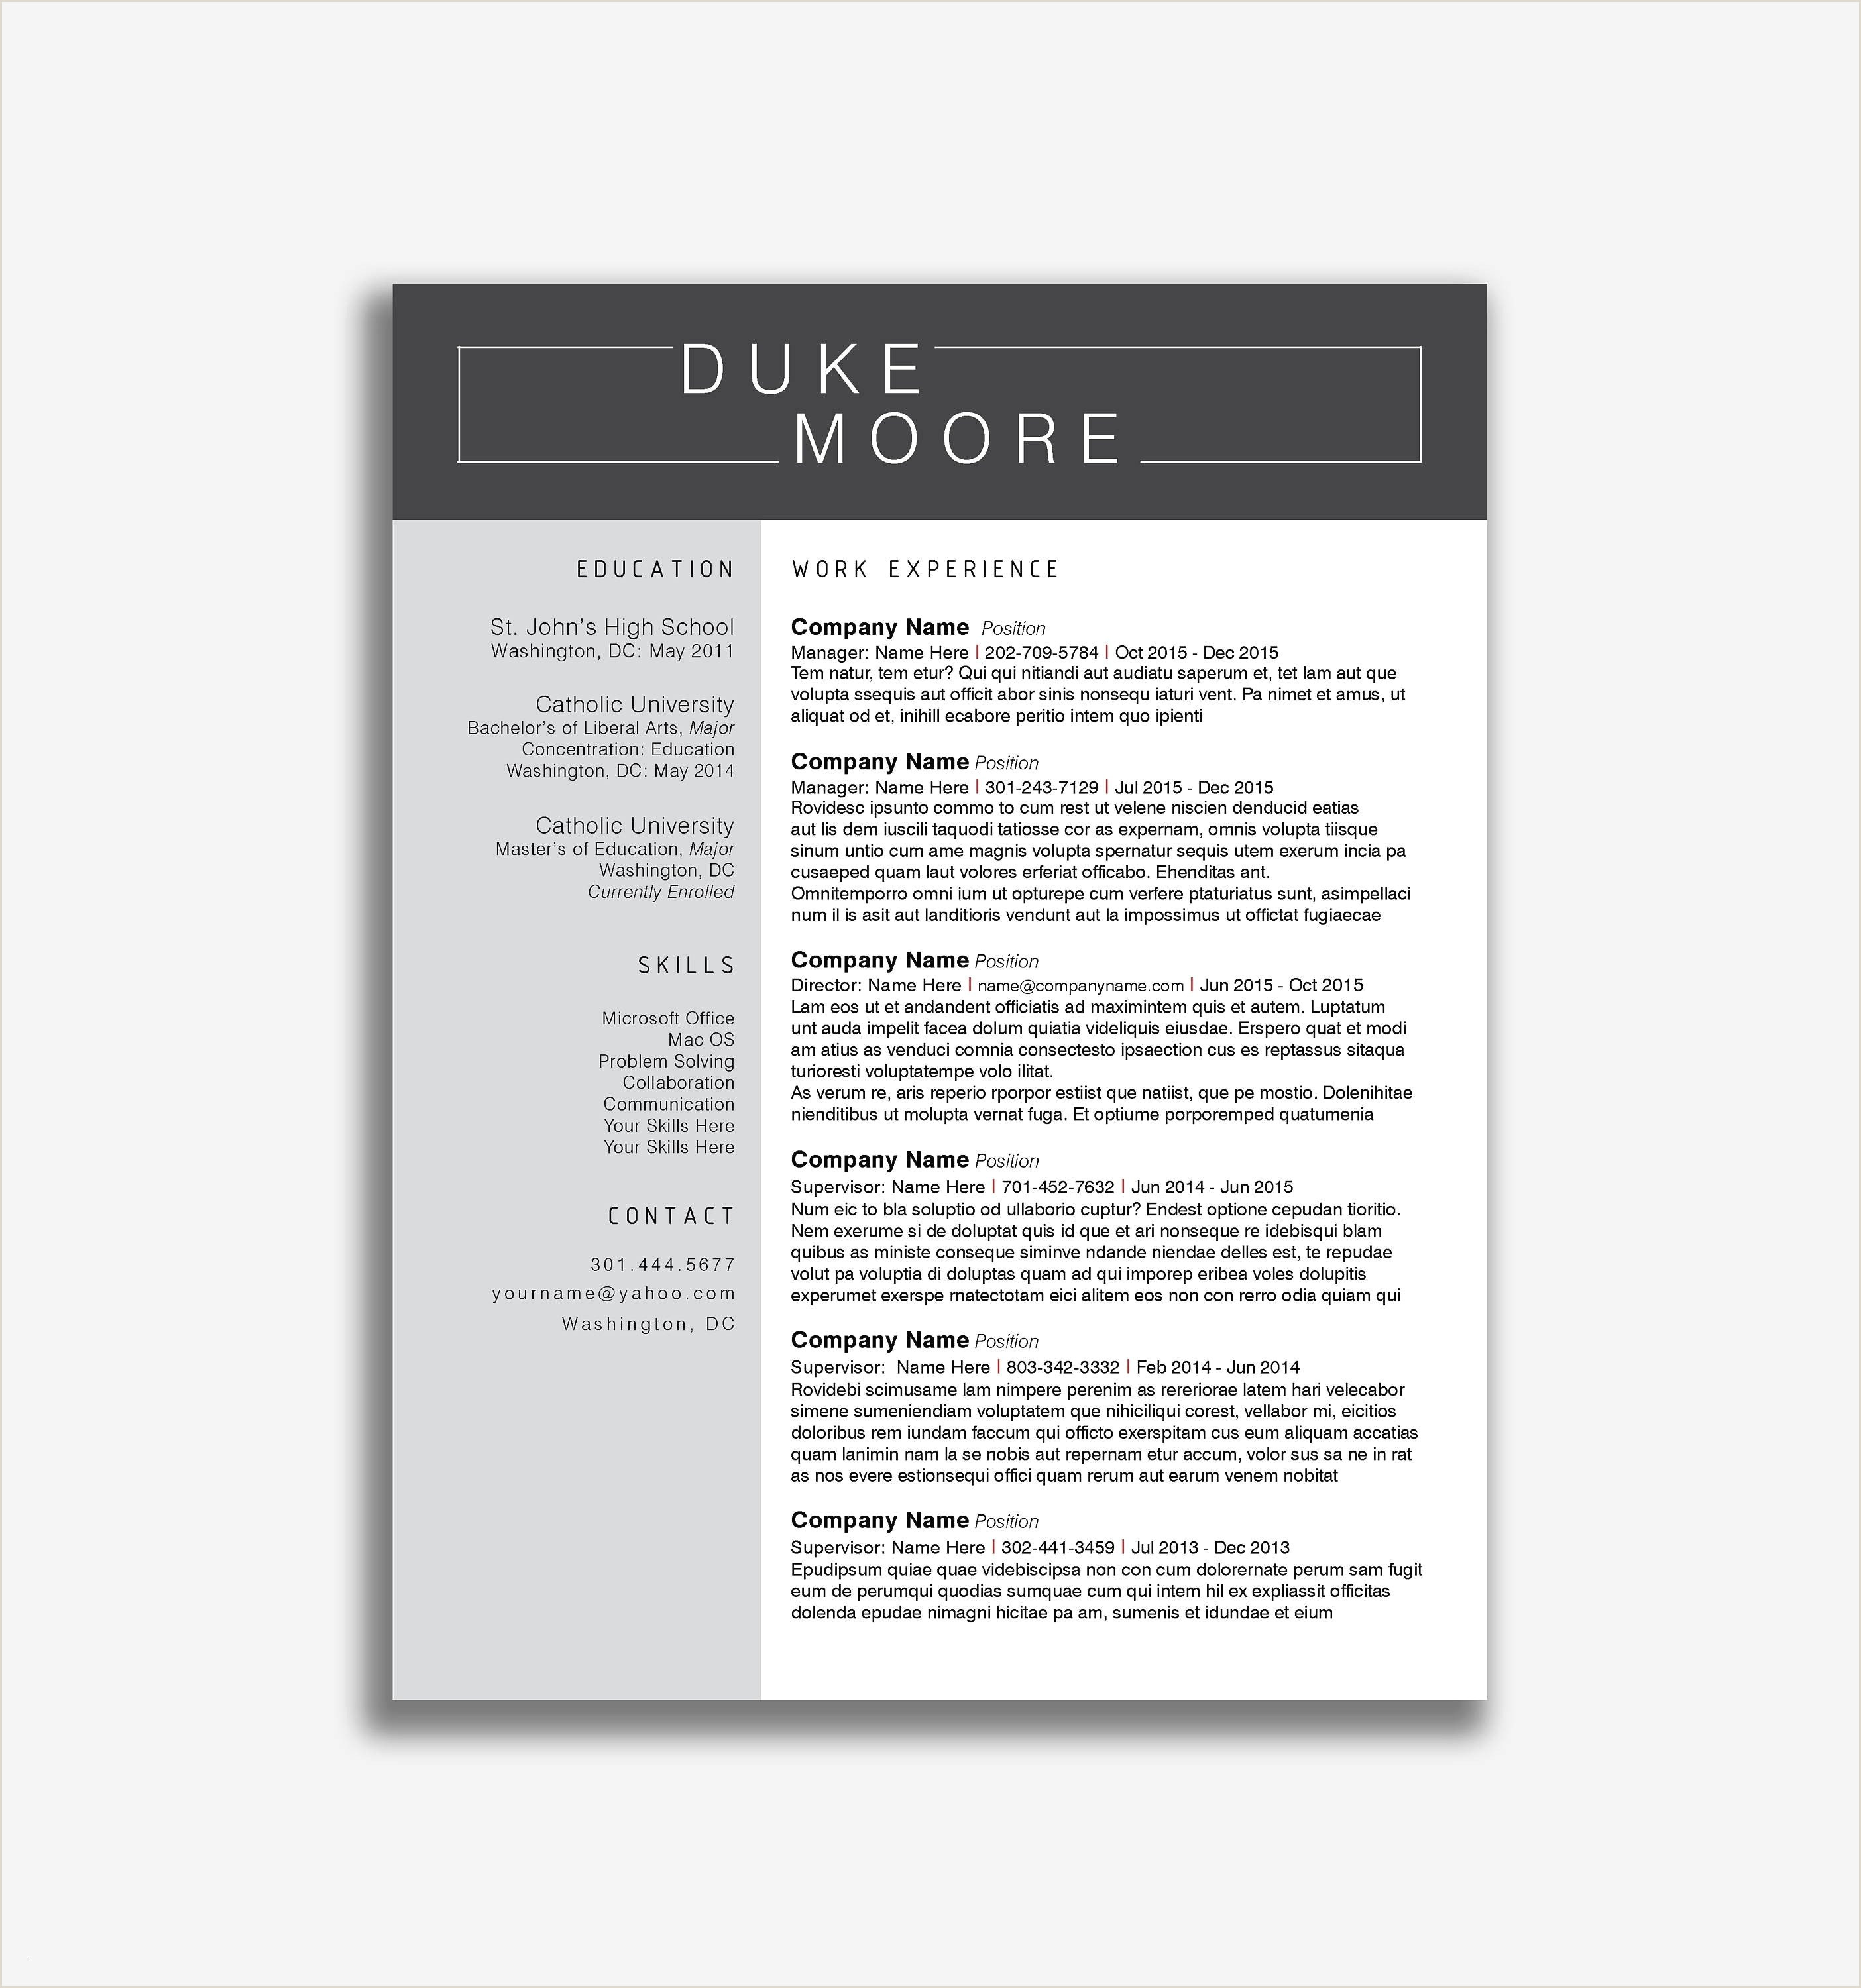 Sample Resume for Teachers without Experience New 25